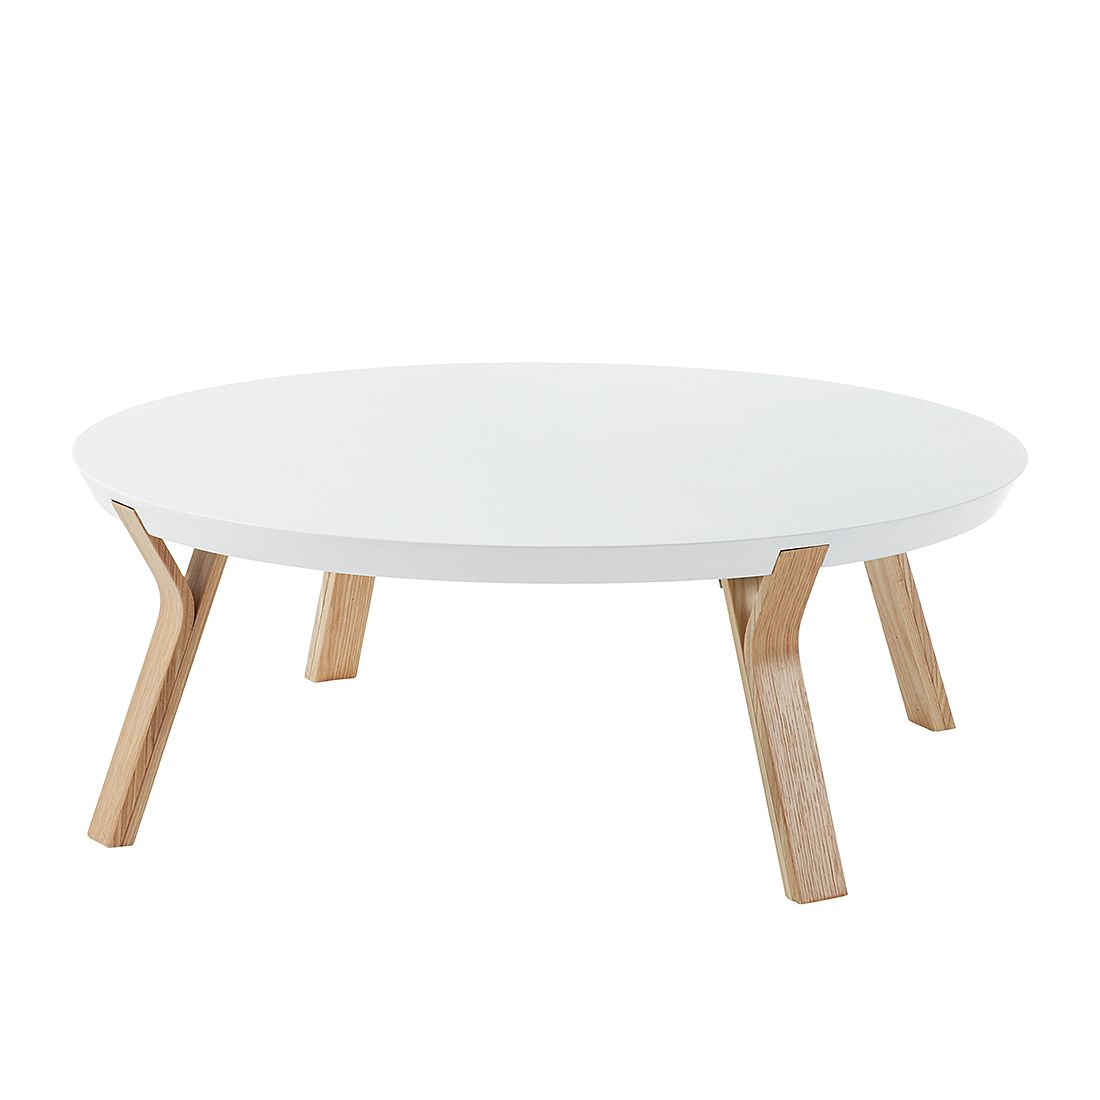 Table basse Collone - Blanc mat / Frêne, Norrwood